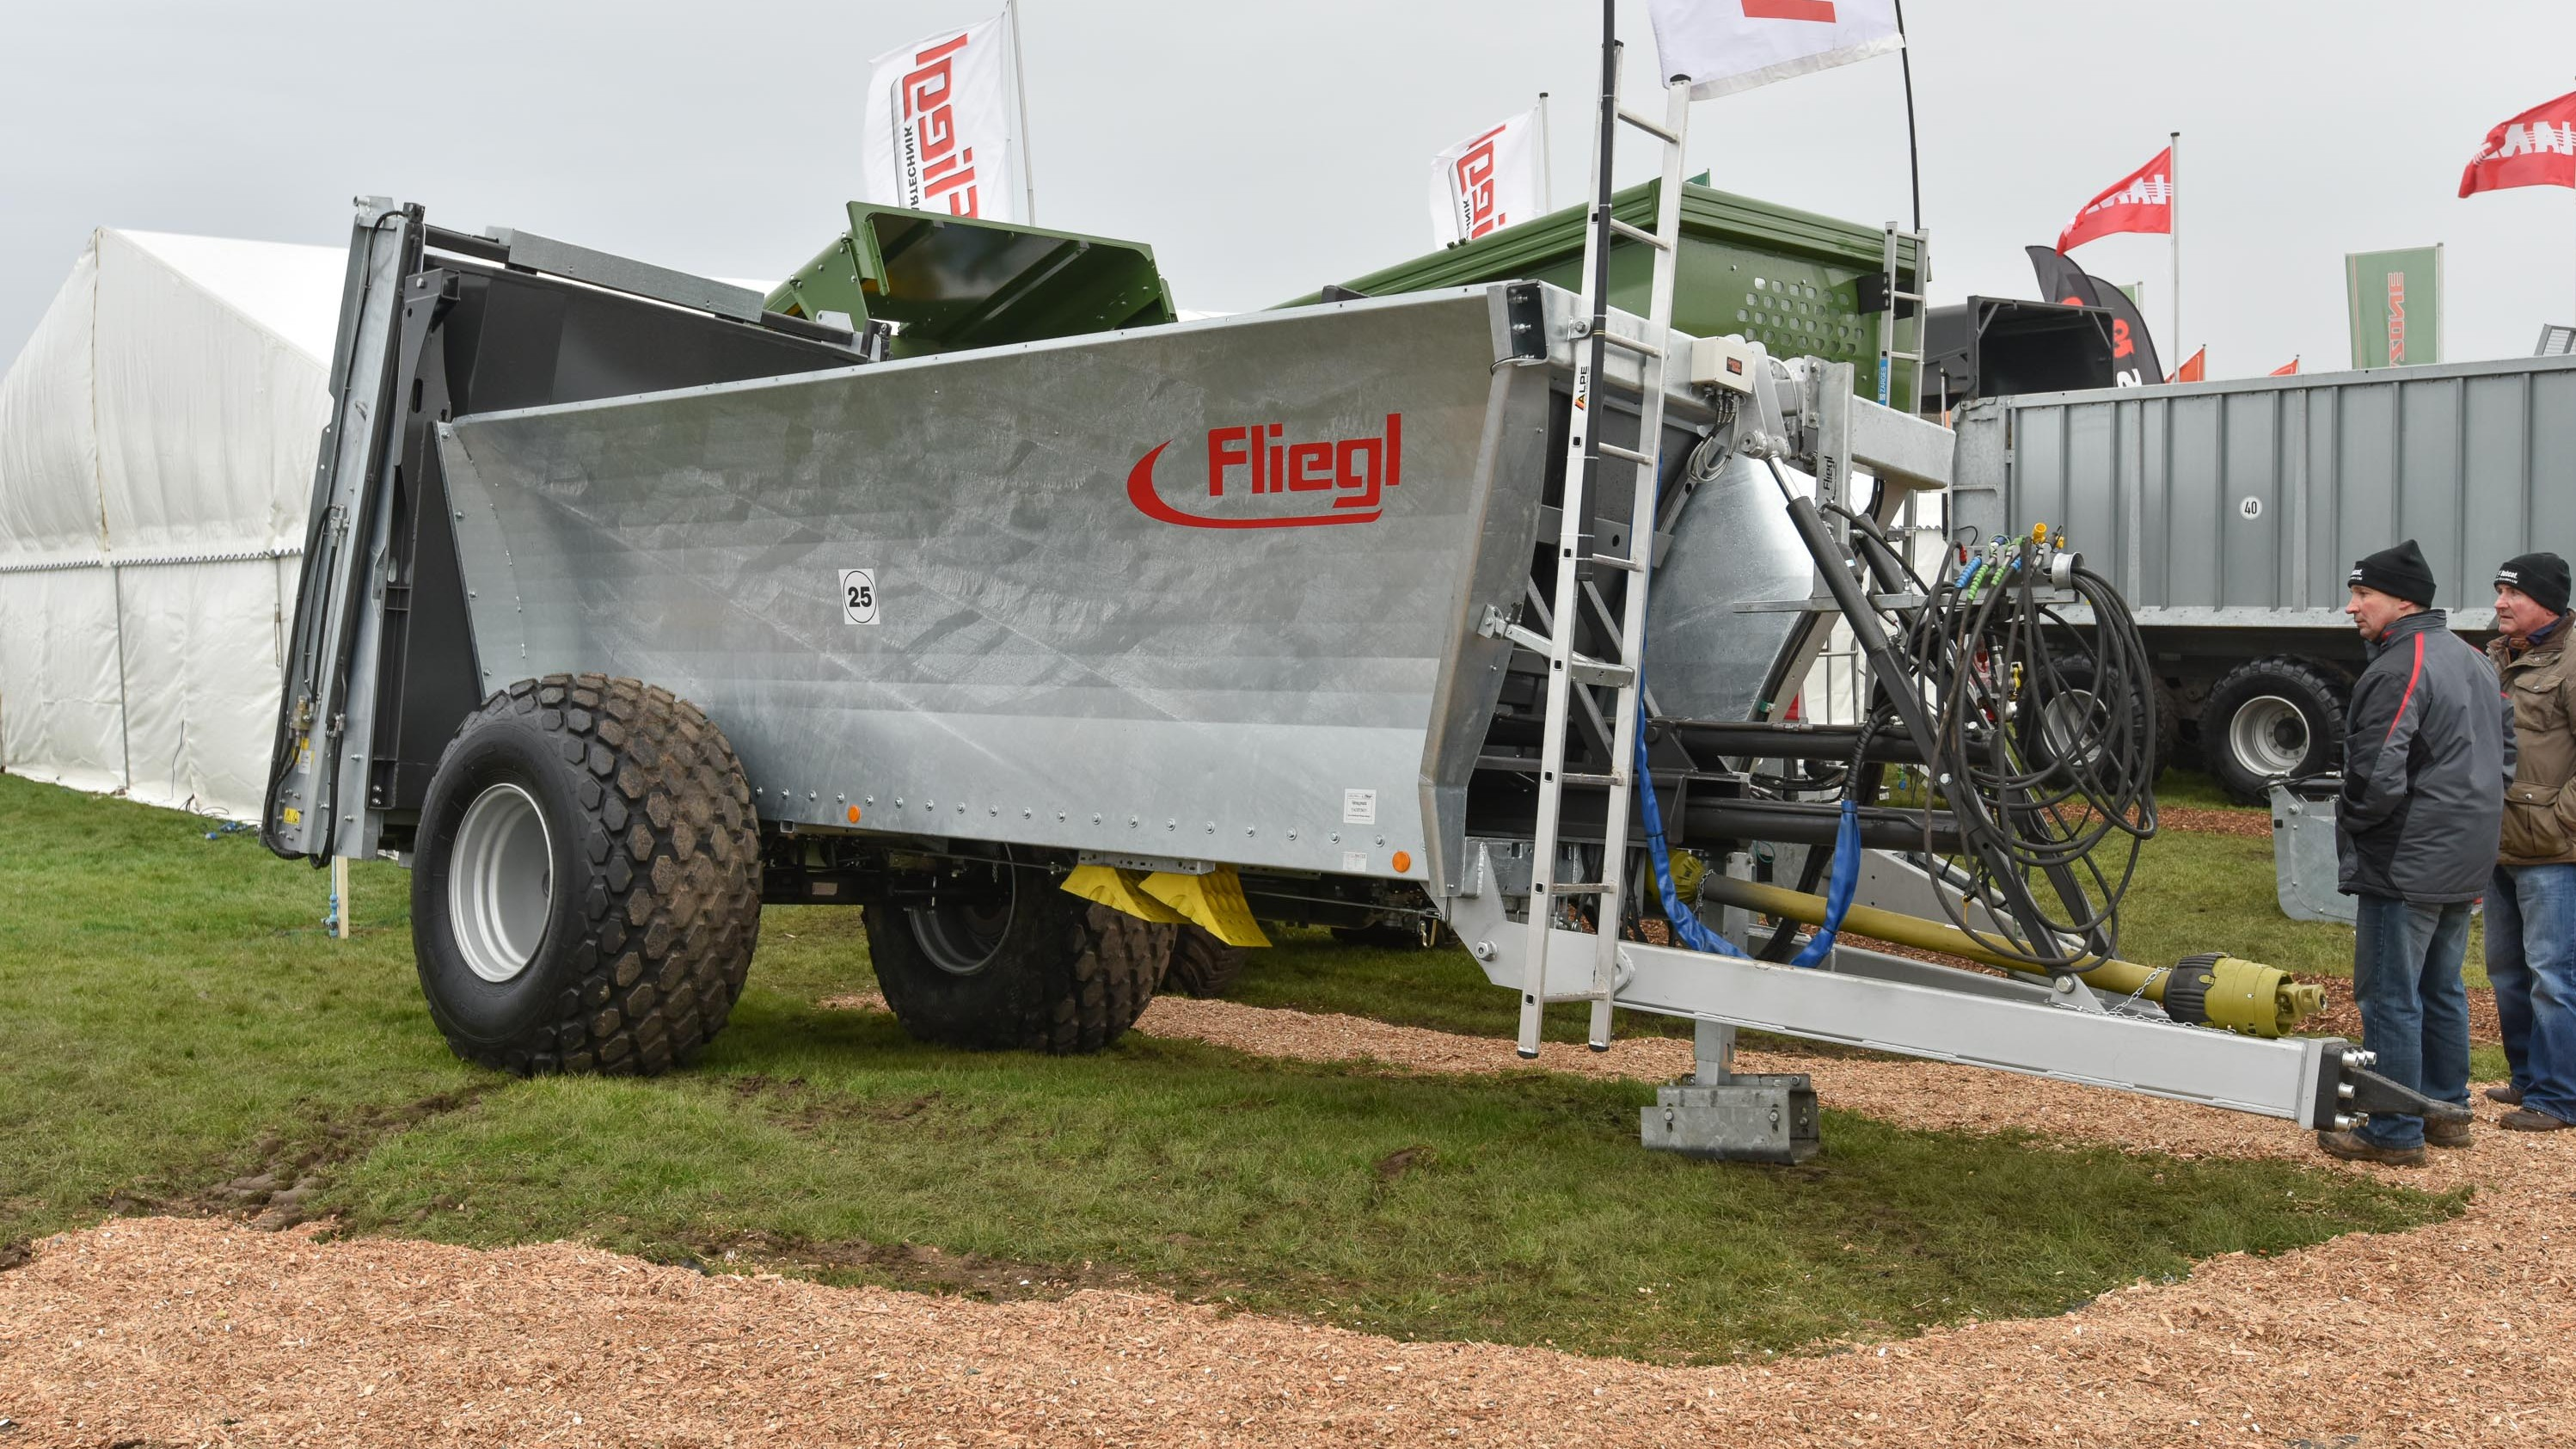 Fliegl muck spreader